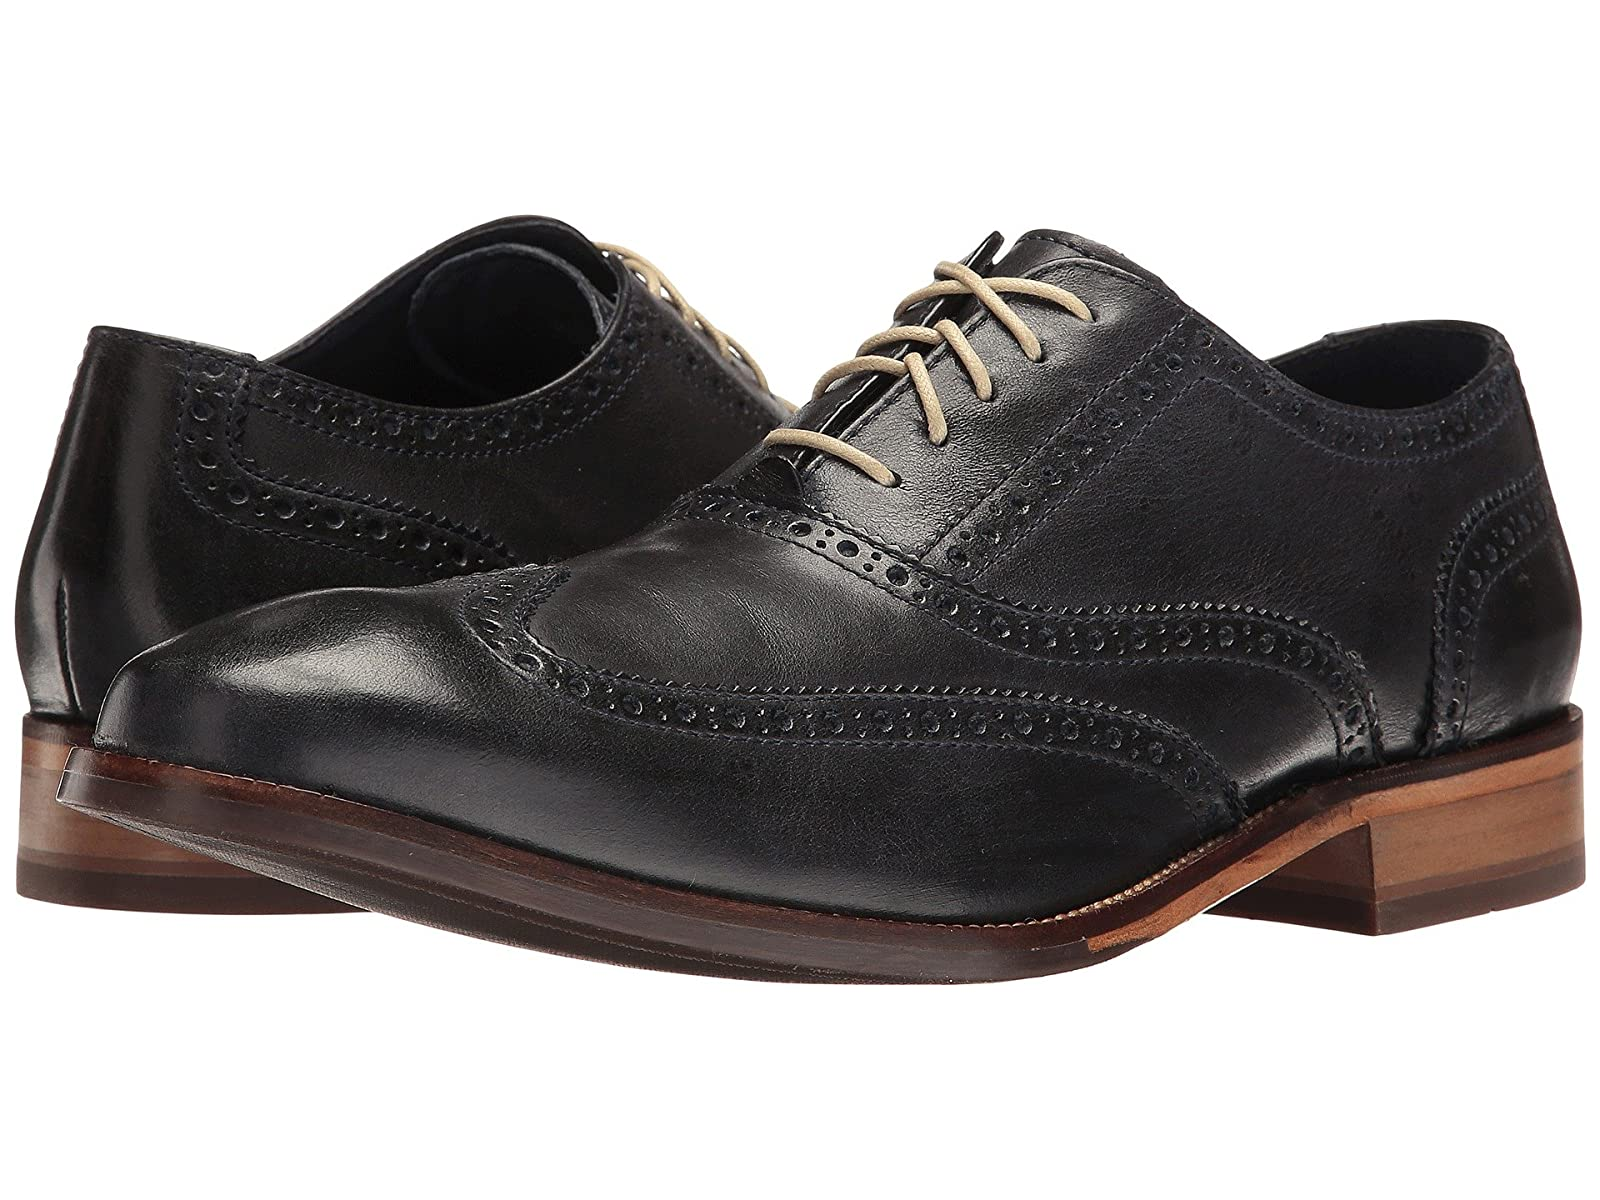 Cole Haan Williams Wing IICheap and distinctive eye-catching shoes